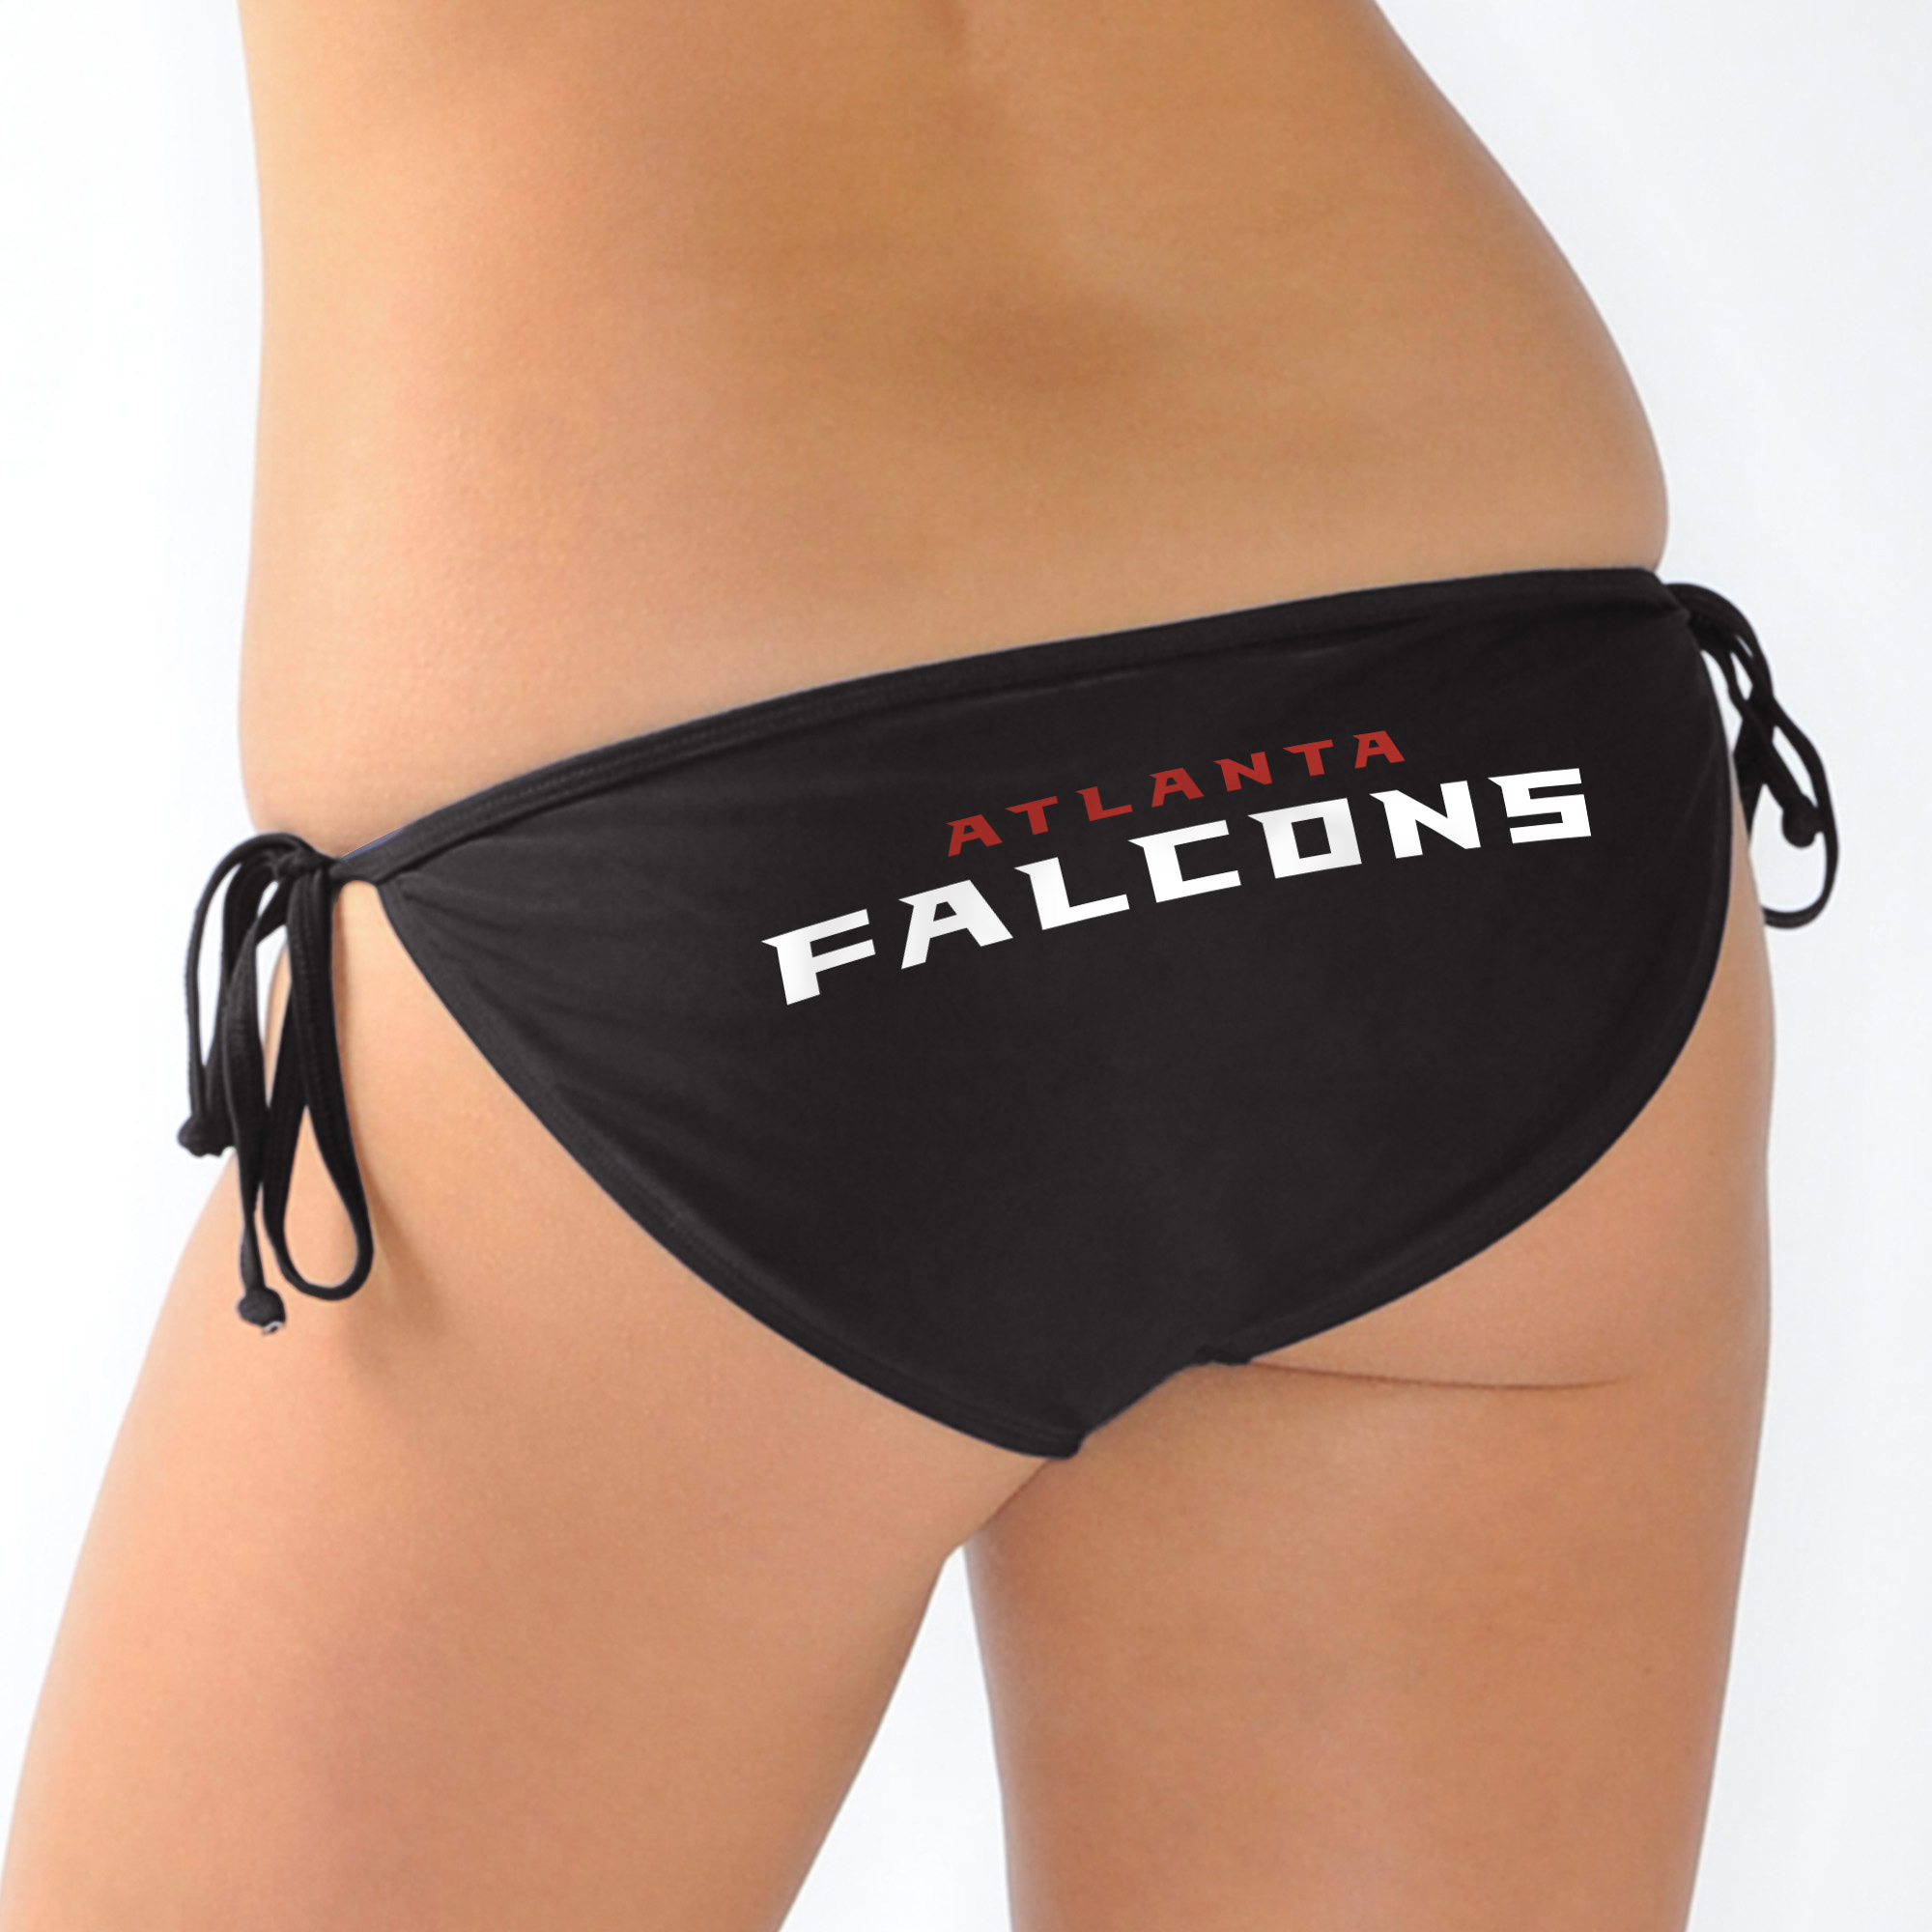 Atlanta Falcons G-III 4Her by Carl Banks Women's Trick Play String Bikini Bottom - Black